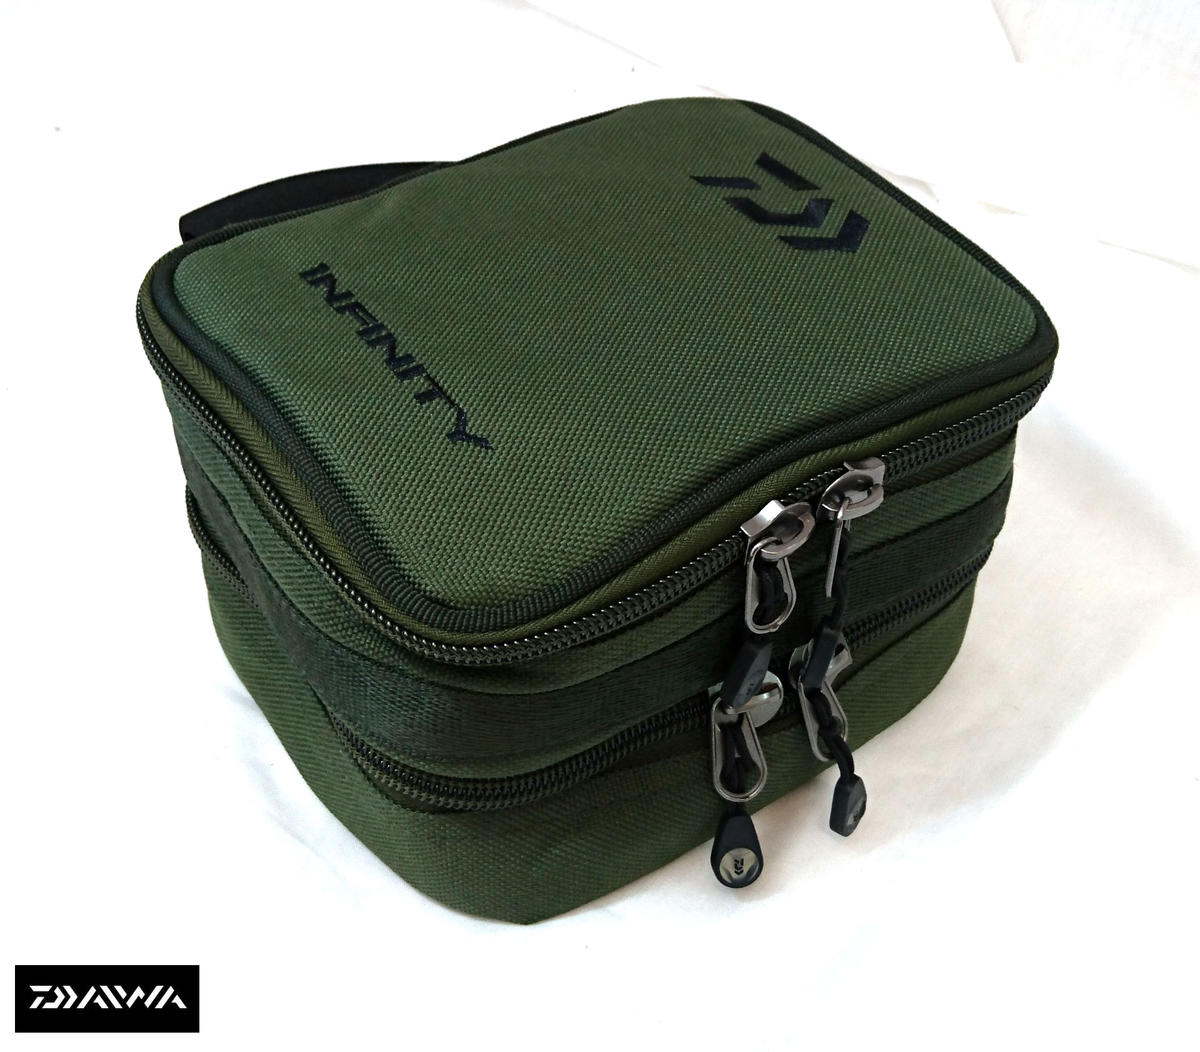 Newv Daiwa Infinity Lead Case 8 Pouch - ILCP1